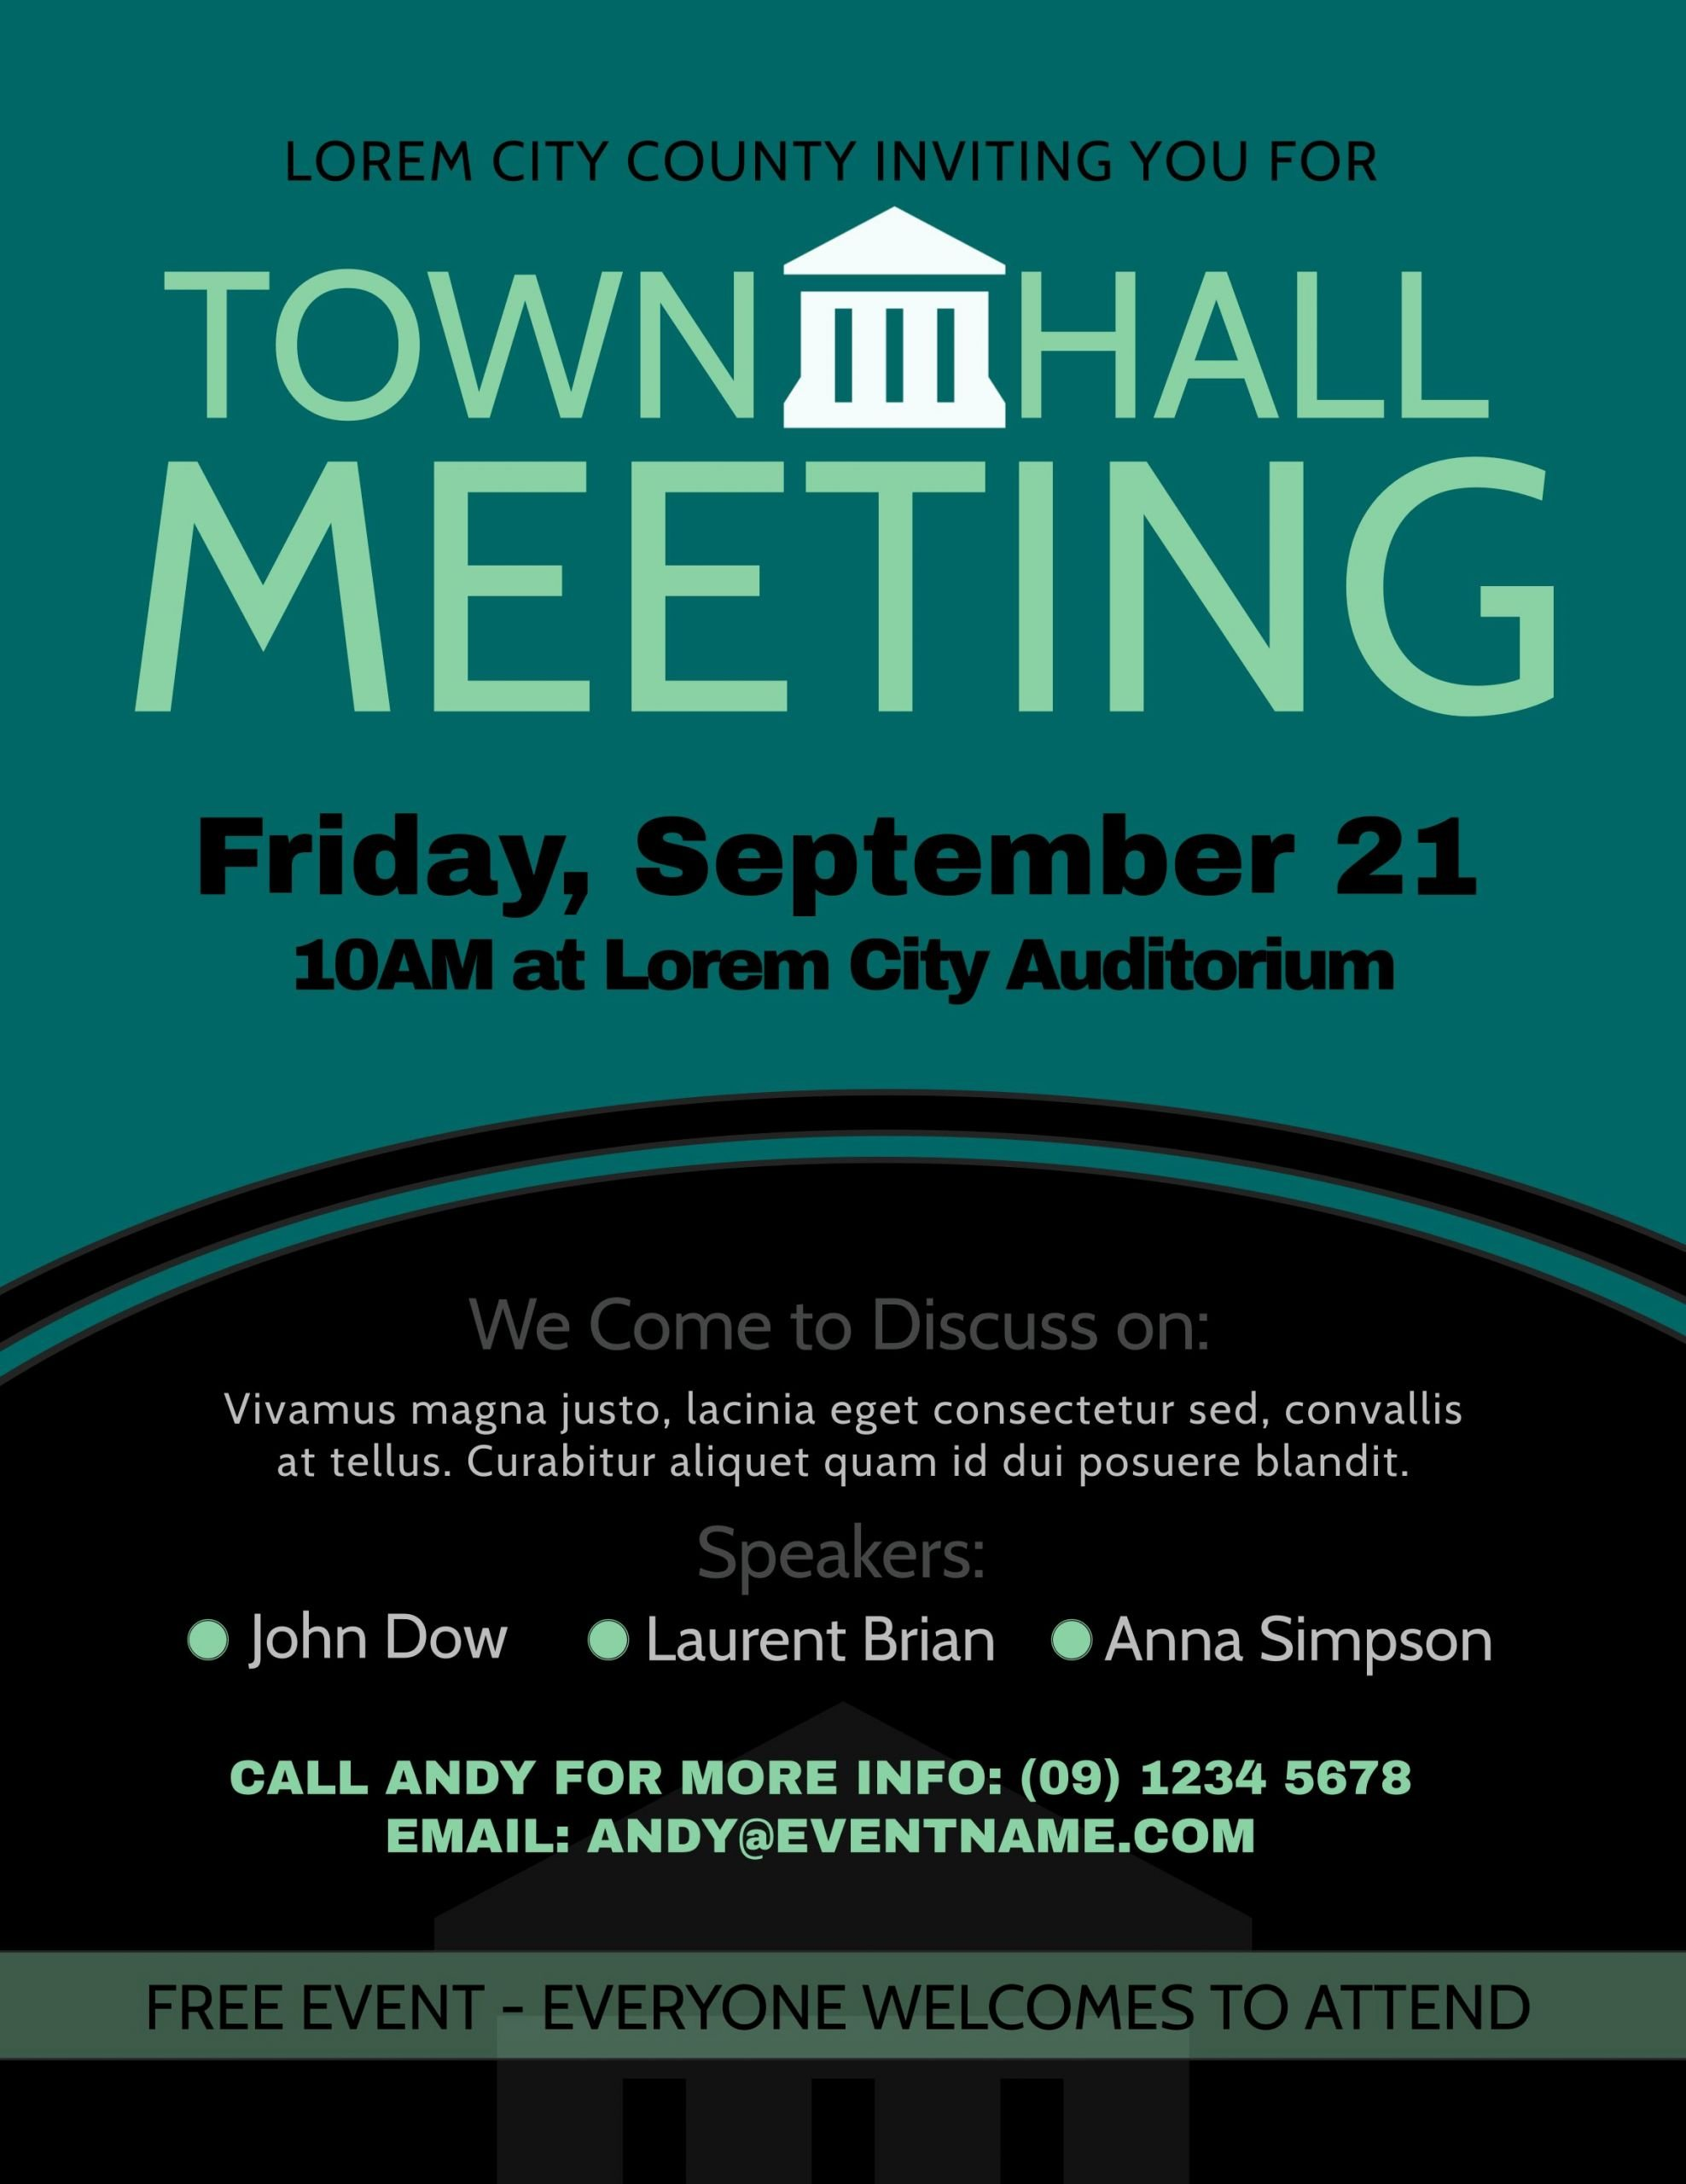 Town Hall Meeting Template Elegant townhall Meeting Poster Design Template